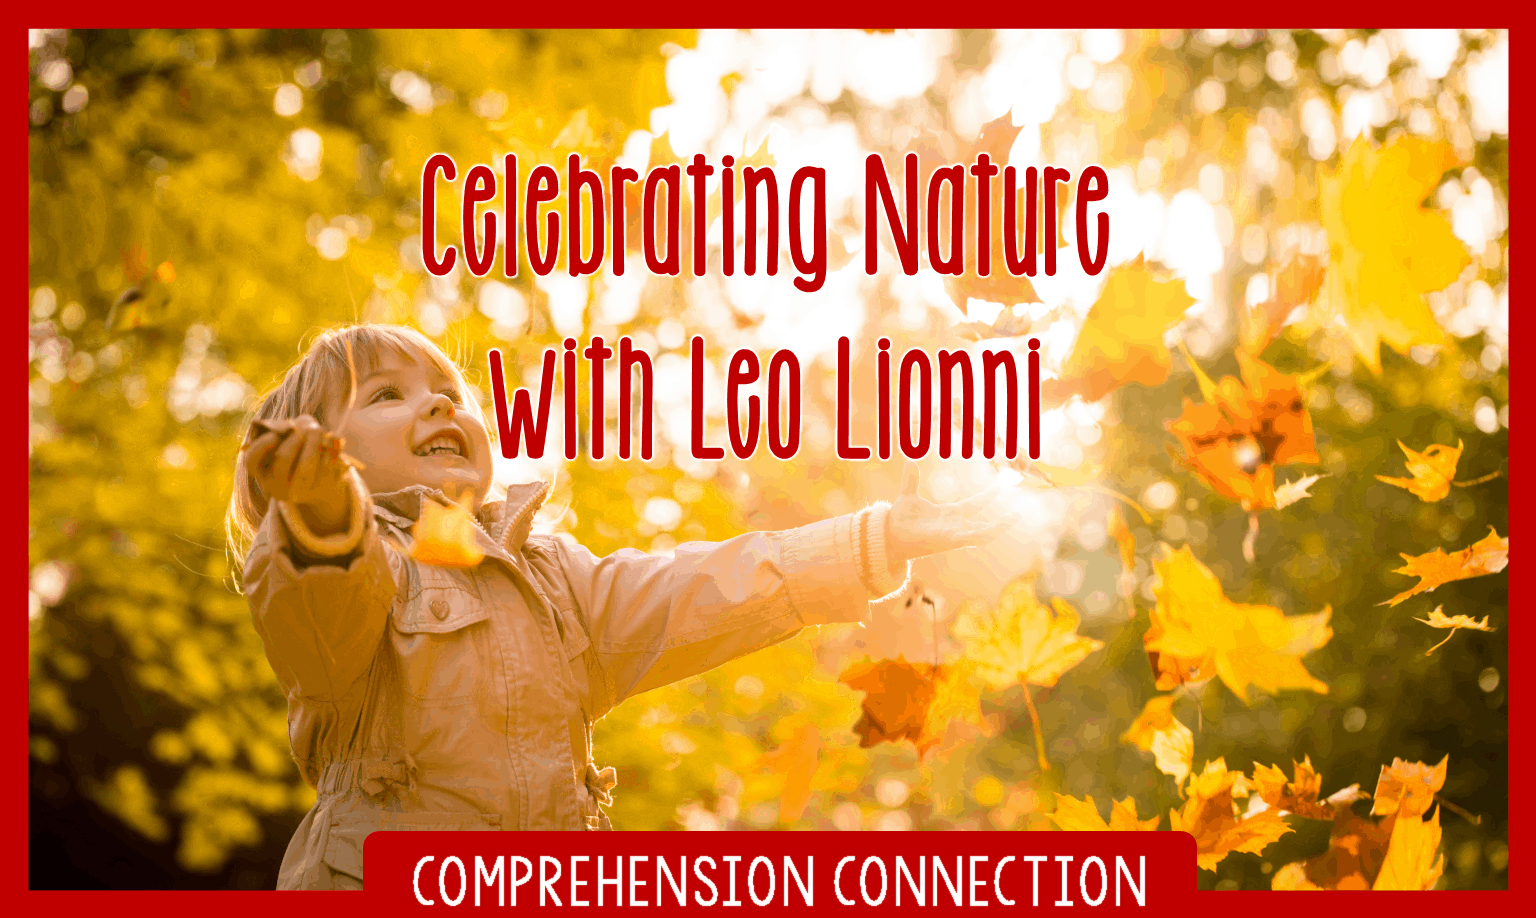 Leo Lionni is a favorite author for the primary grades. This post includes lesson ideas and resources celebrating his wonderful books.